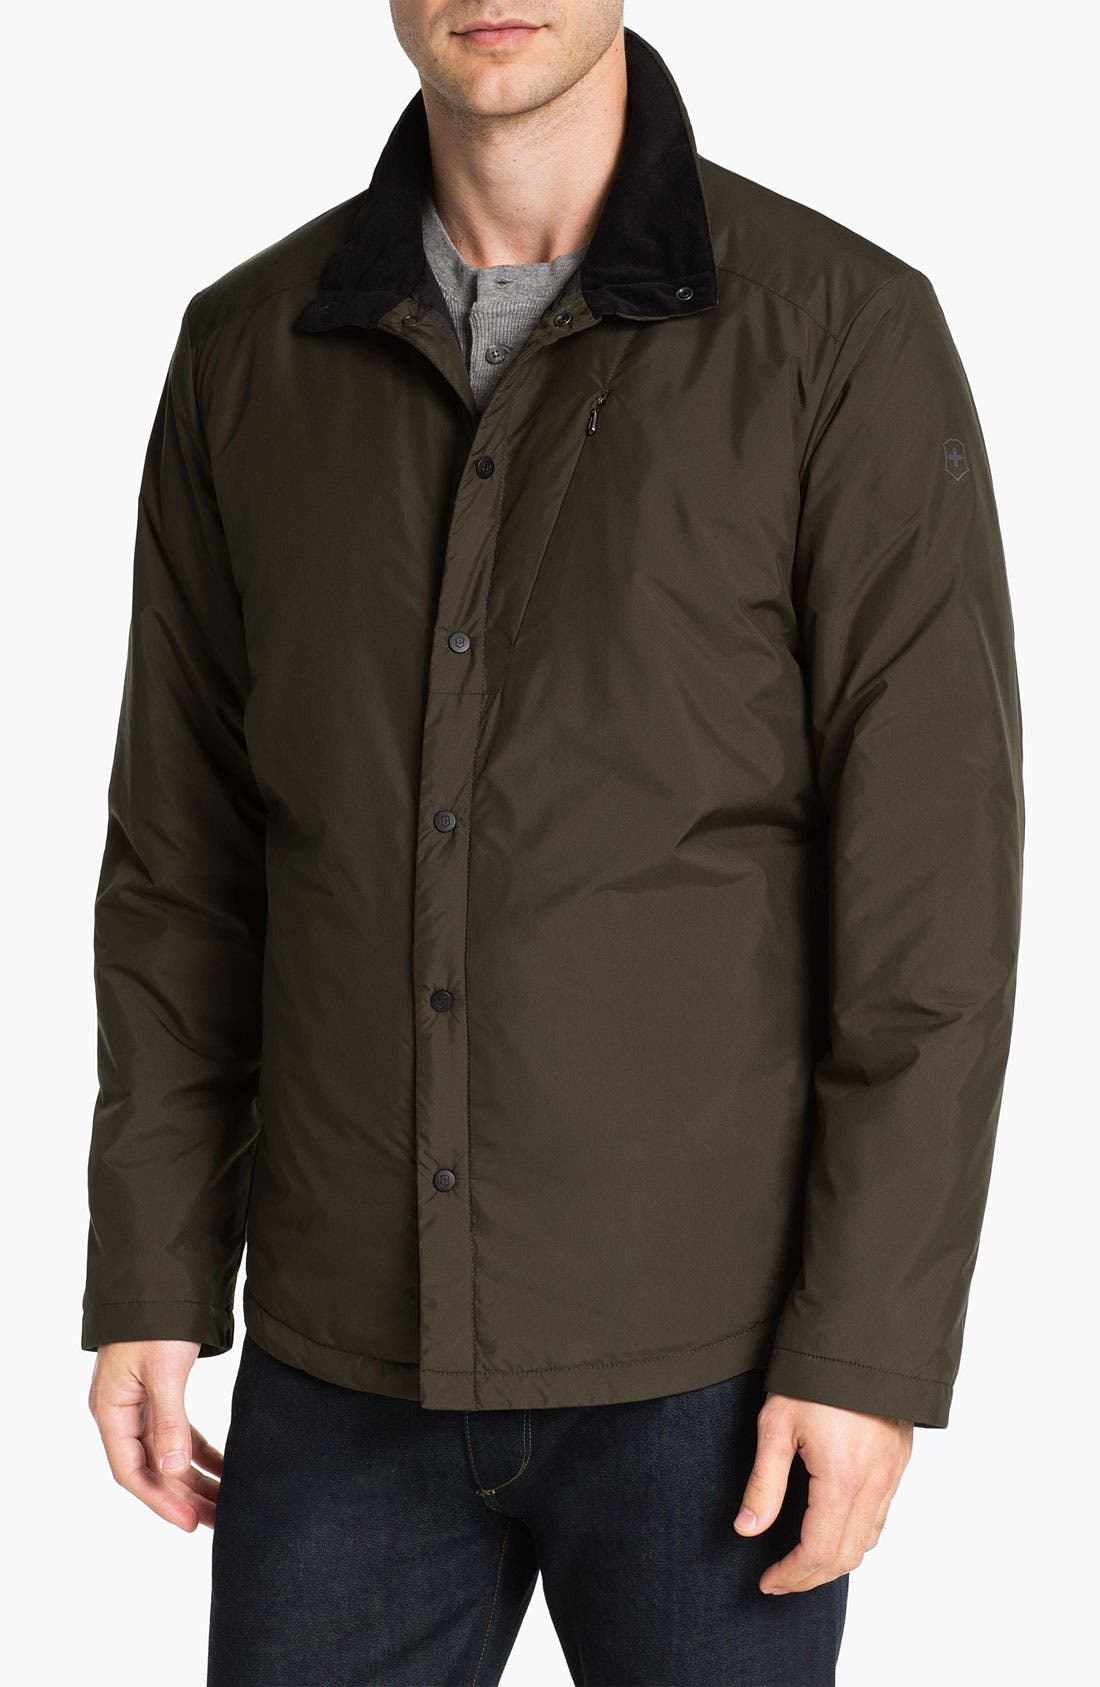 Alternate Image 1 Selected - Victorinox Swiss Army® 'Bernin' Insulated Jacket (Online Only)